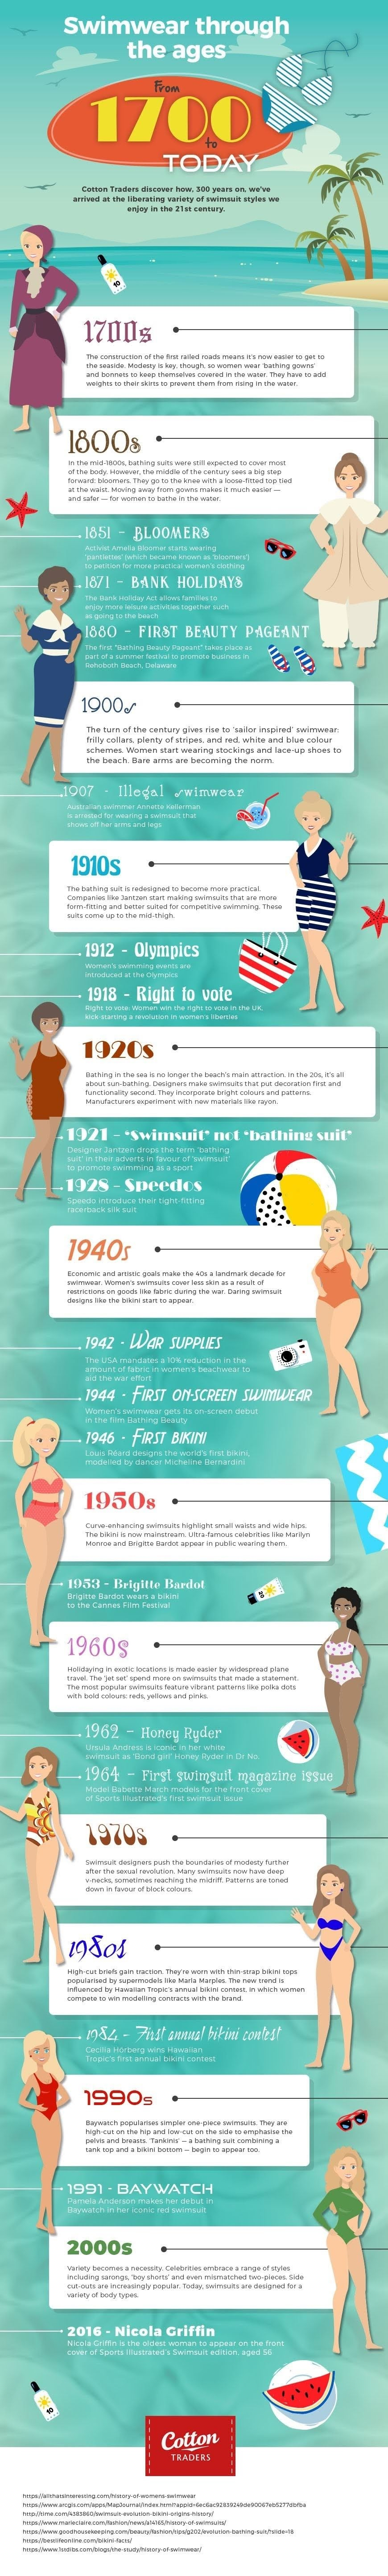 Swimwear from 1700 to the present day. #infographic